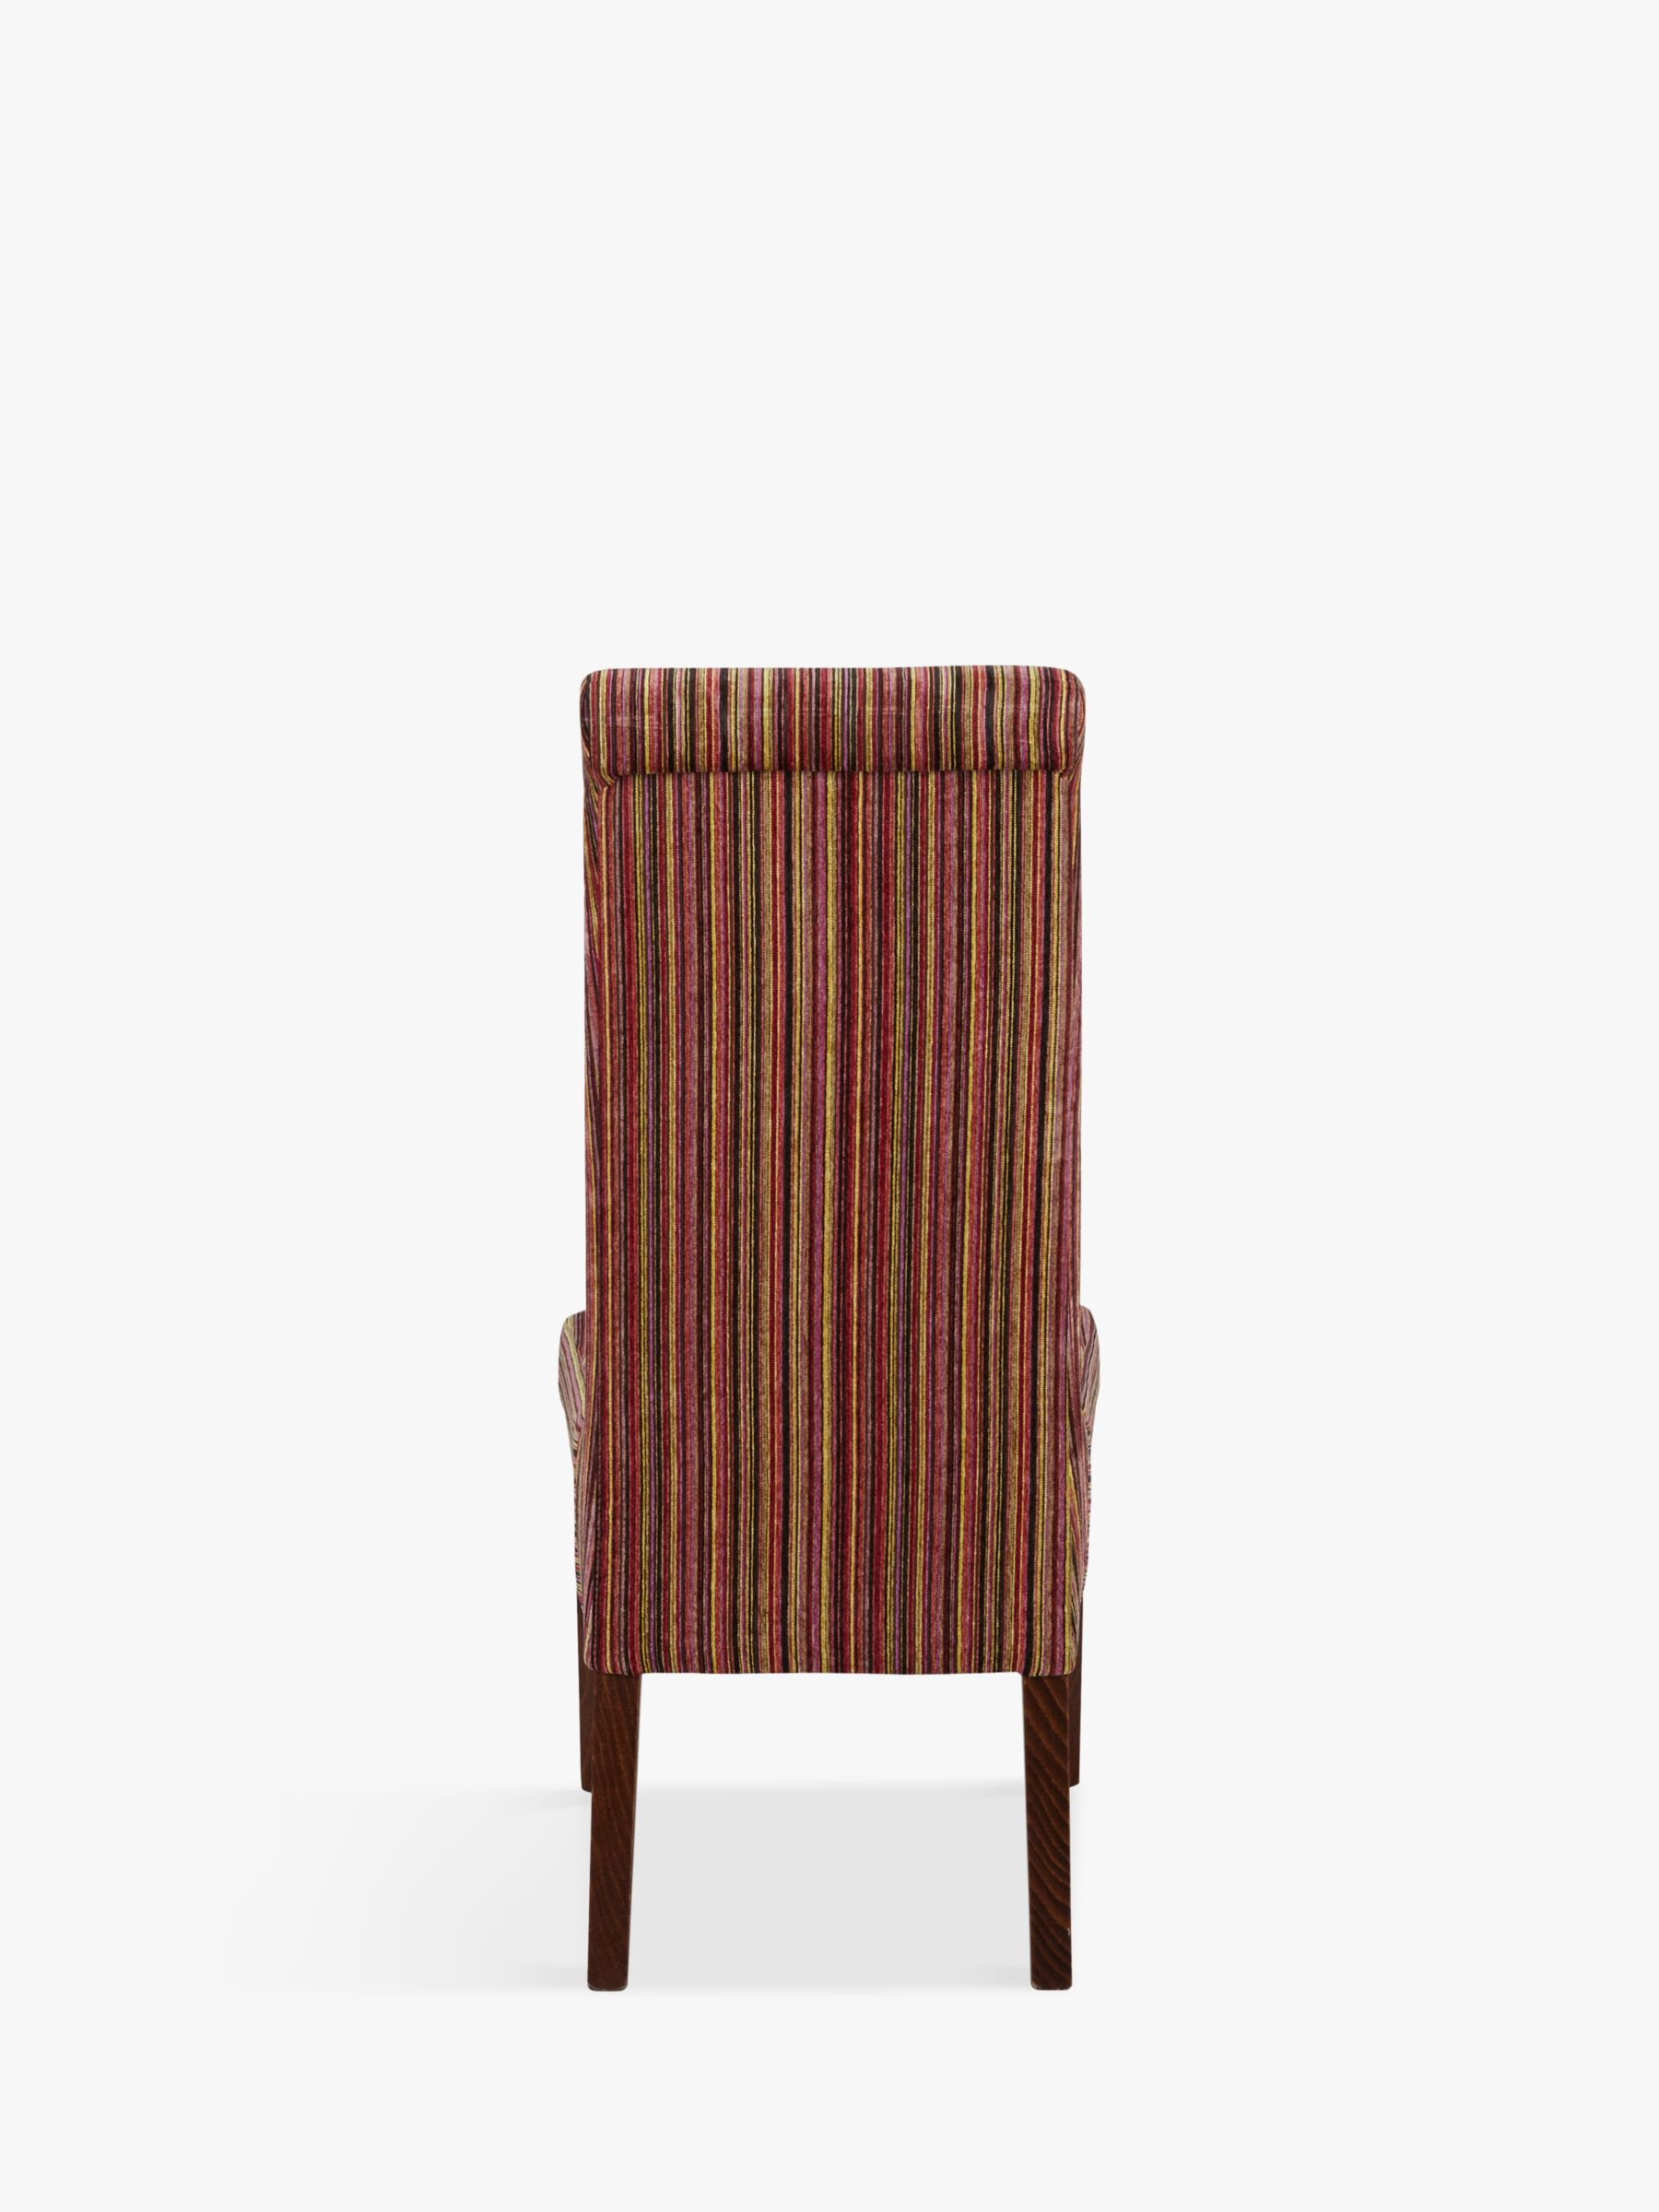 Upholstered Children's Chairs John Lewis Partners Maharani Upholstered Dining Chair Raspberry Stripe